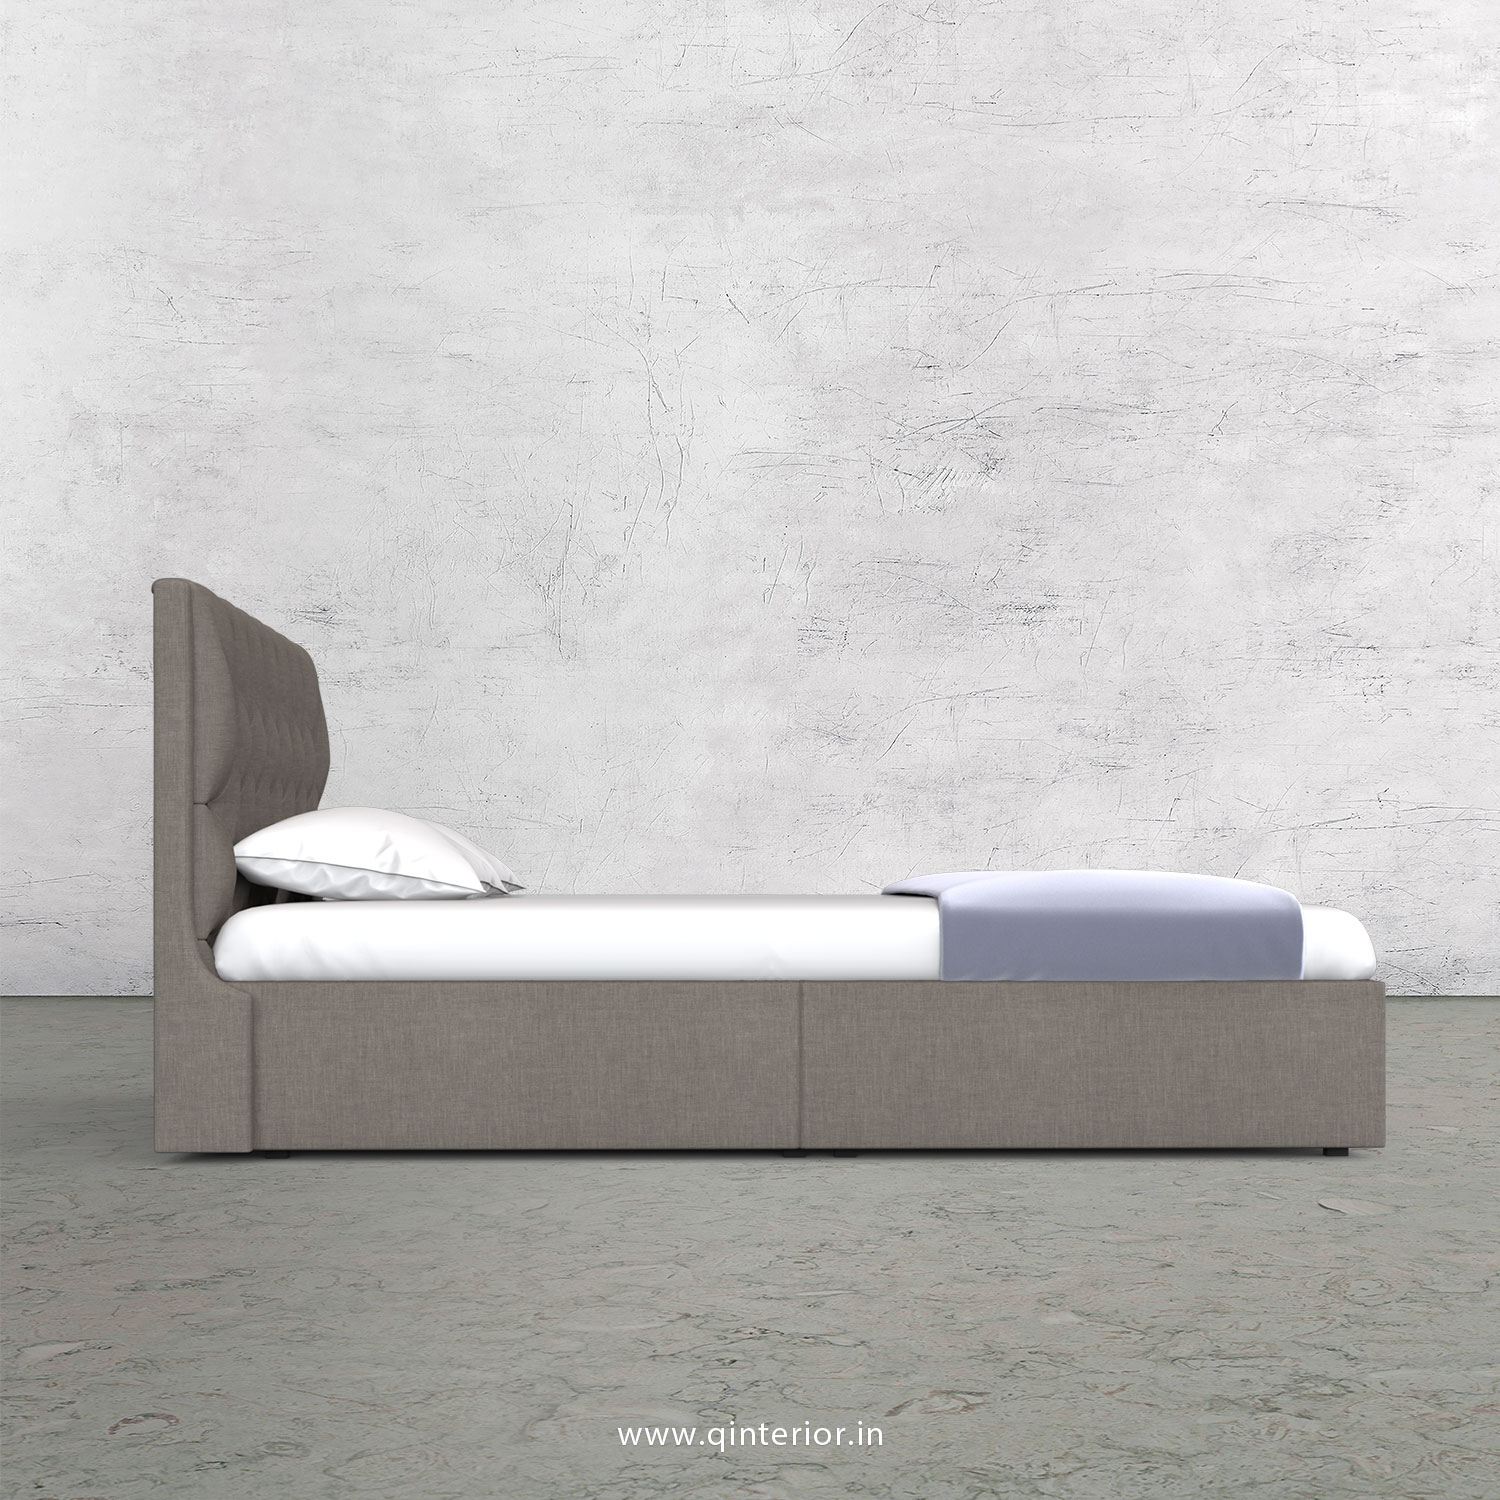 Scorpius Queen Storage Bed in Cotton Plain - QBD001 CP11